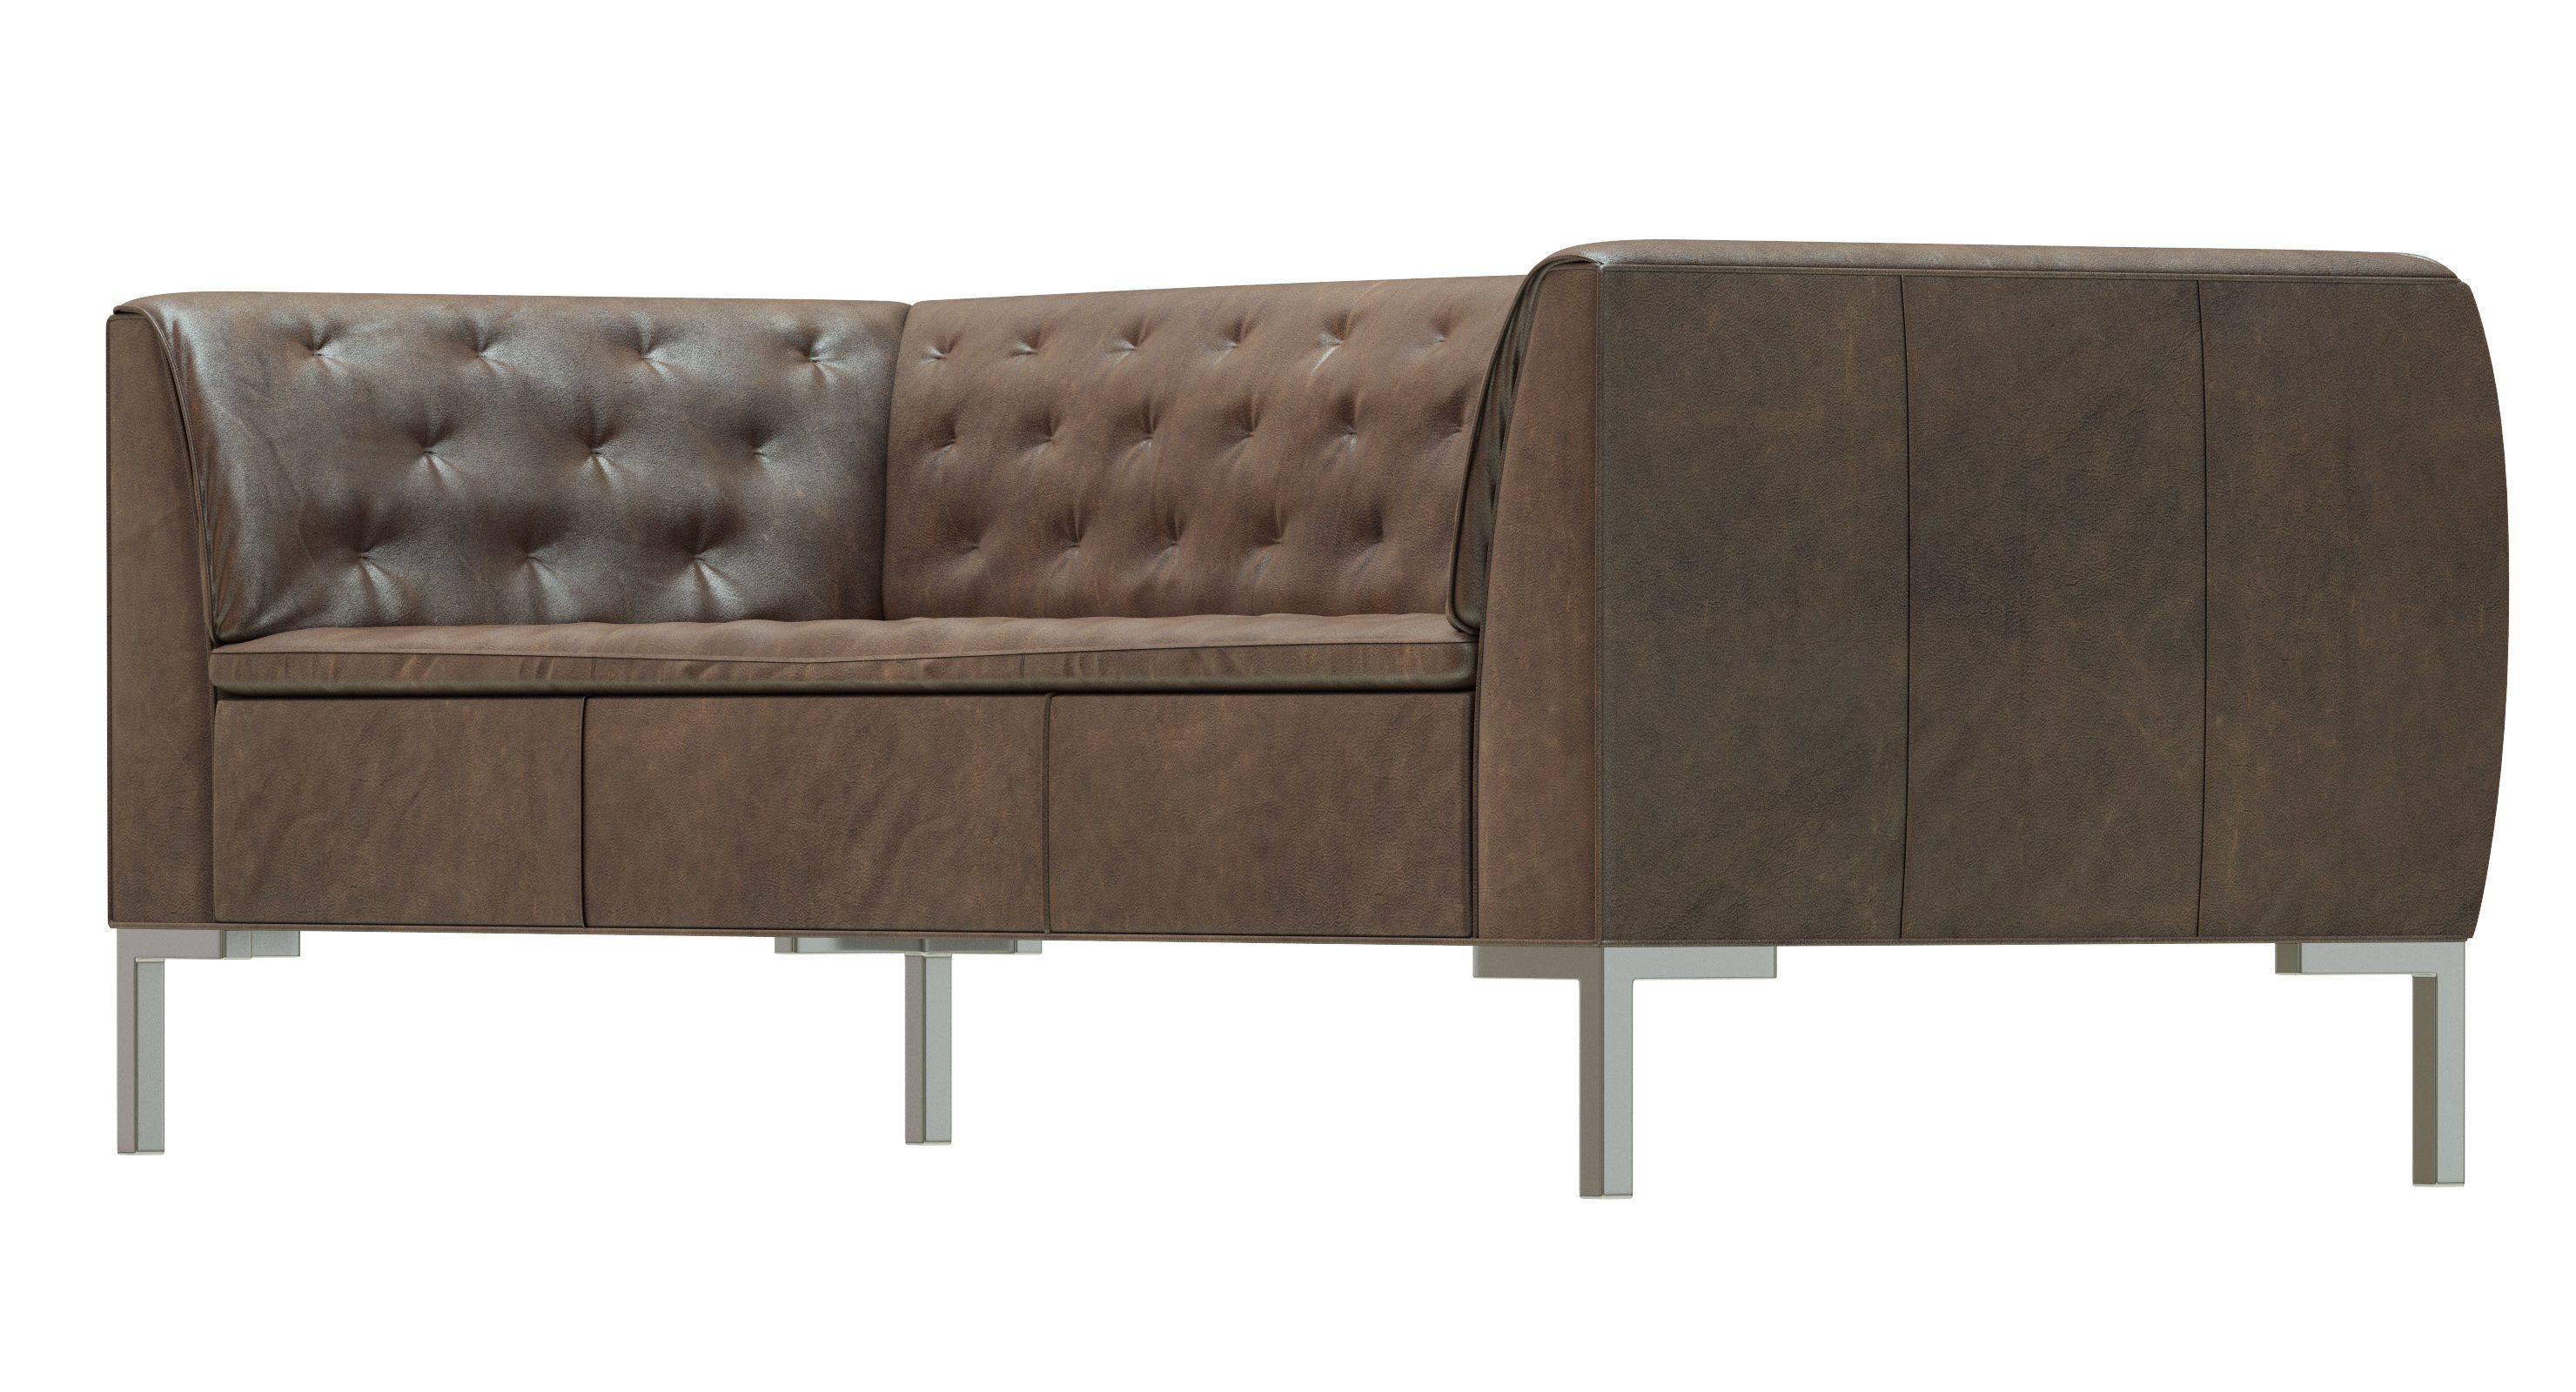 ... Crate And Barrel Grafton Leather Chesterfield Sofa 3d Model Max Obj 3ds  Fbx Mtl 4 ...